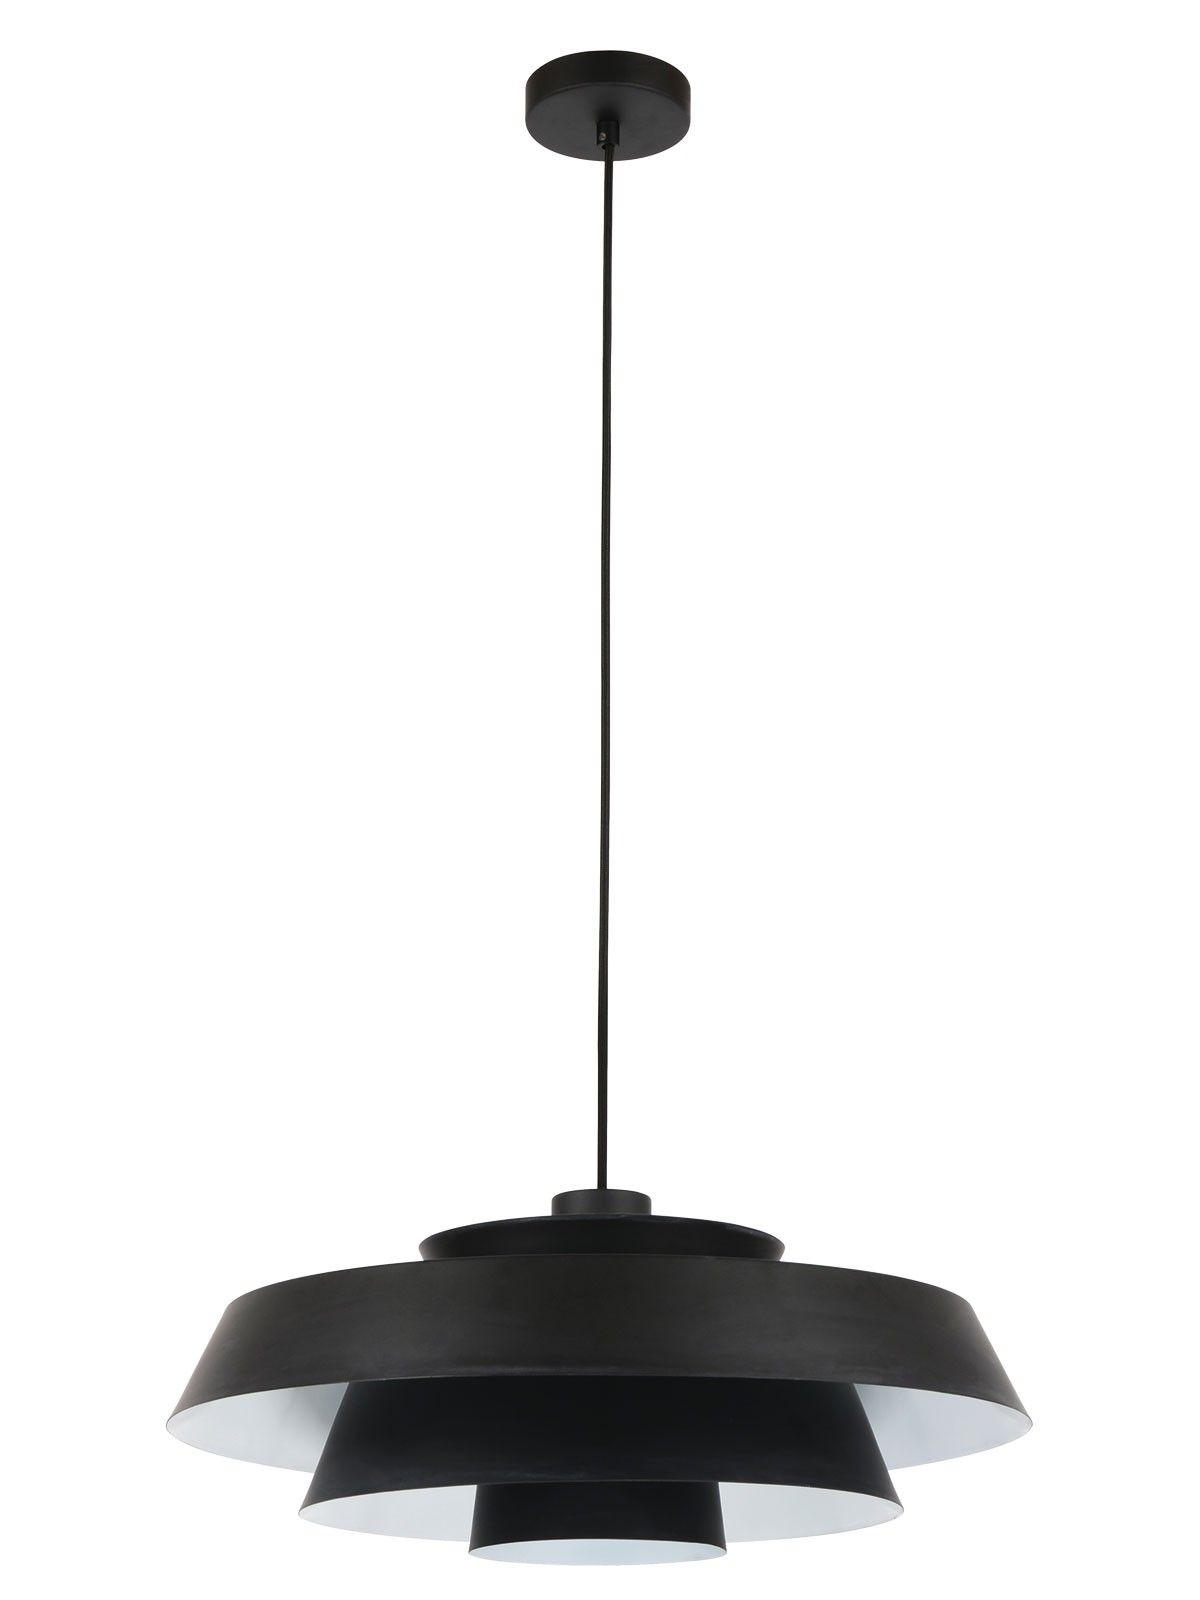 Beacon Harlow Large Pendant in Black lighting Pinterest